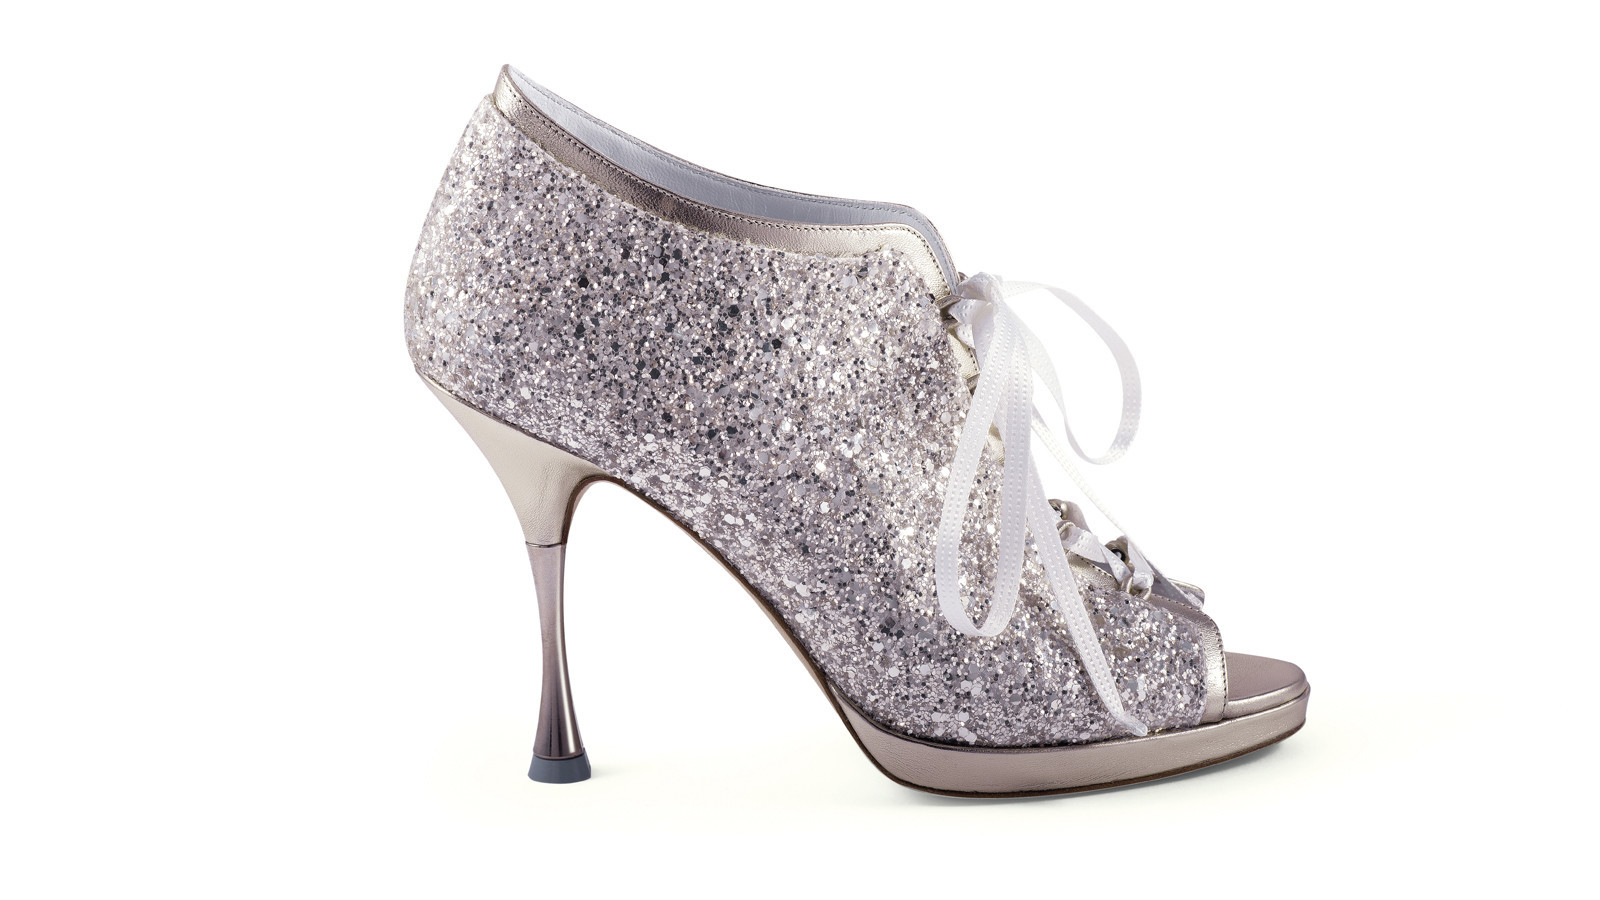 Crystal-encrusted shoes might enliven a traditional wedding dress.